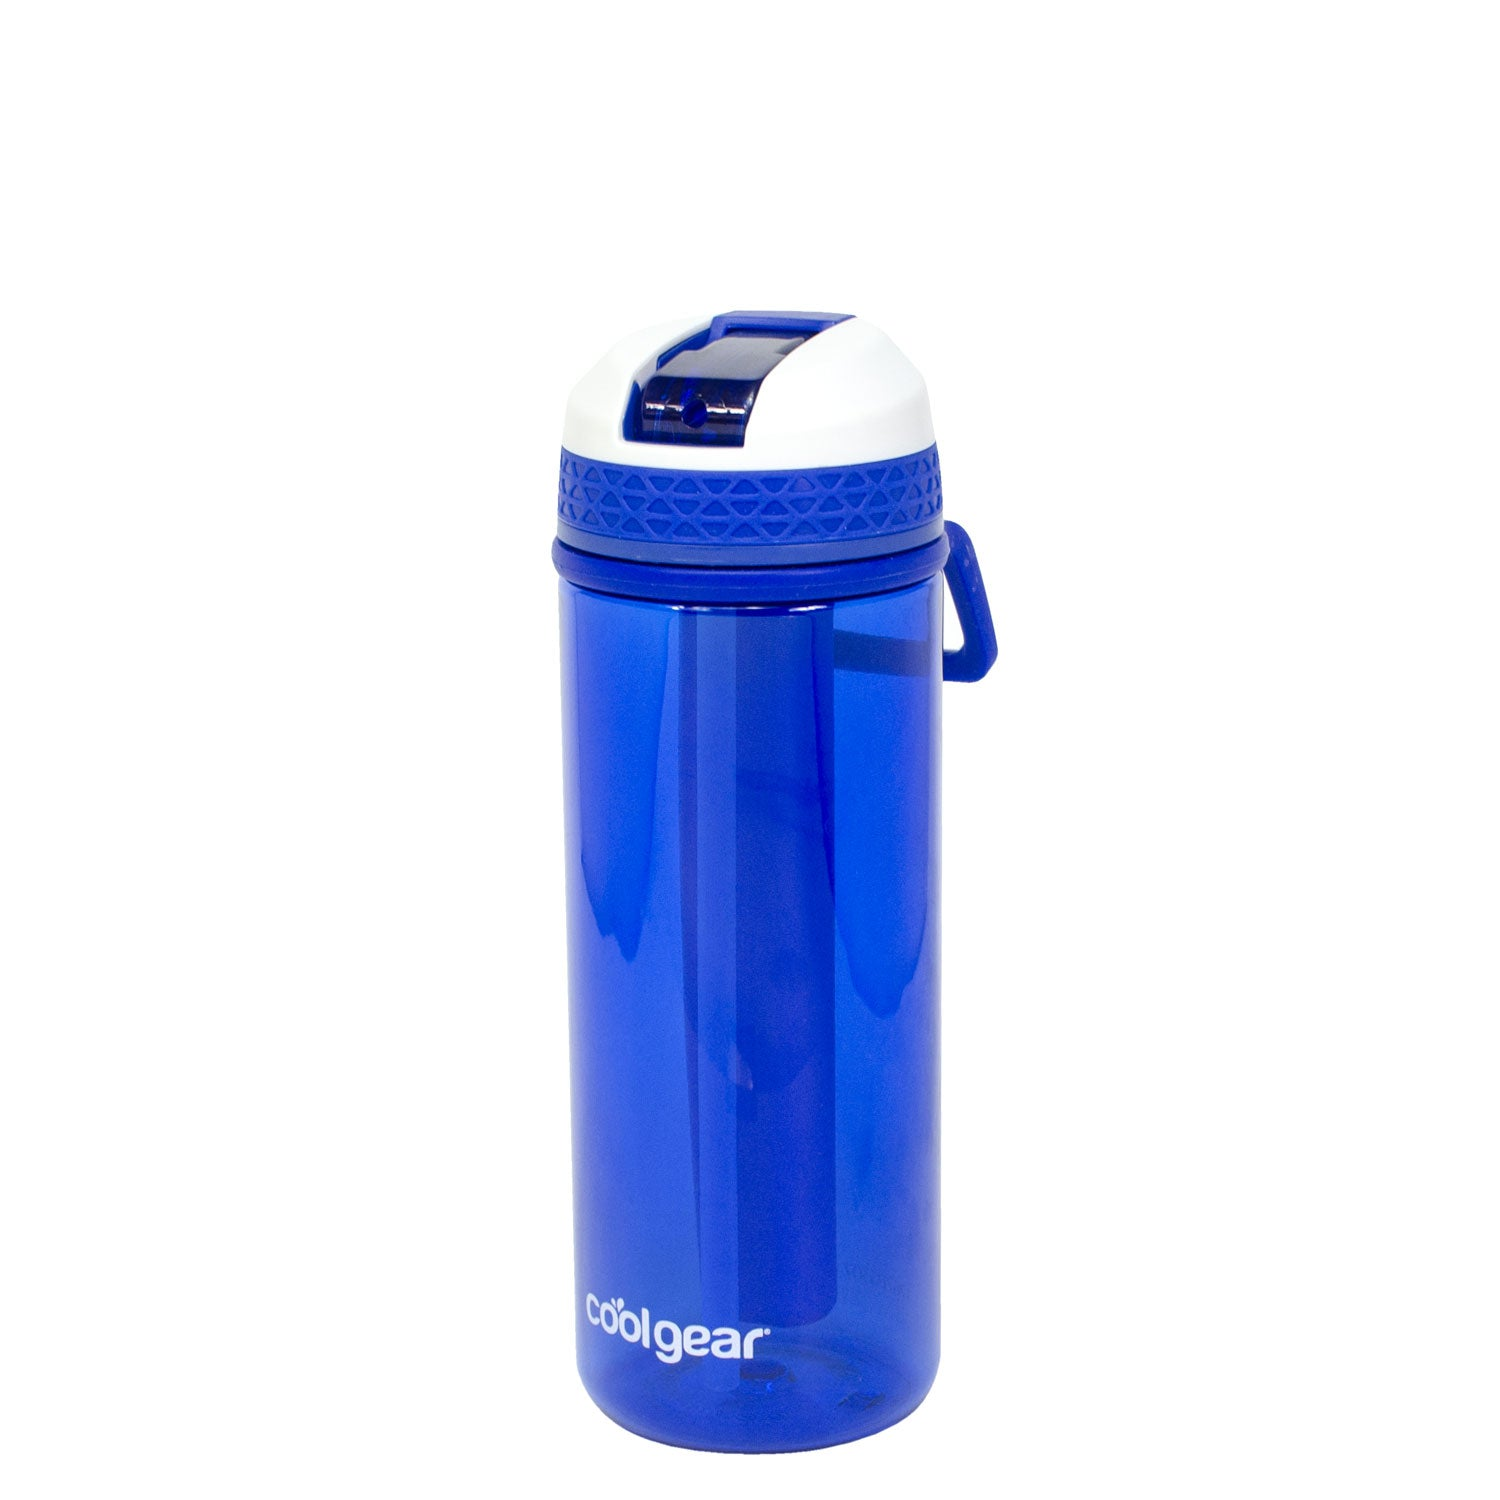 14138baf0a2 System 24 Oz Water Bottle | Reusable, Bpa-Free | Cool Gear